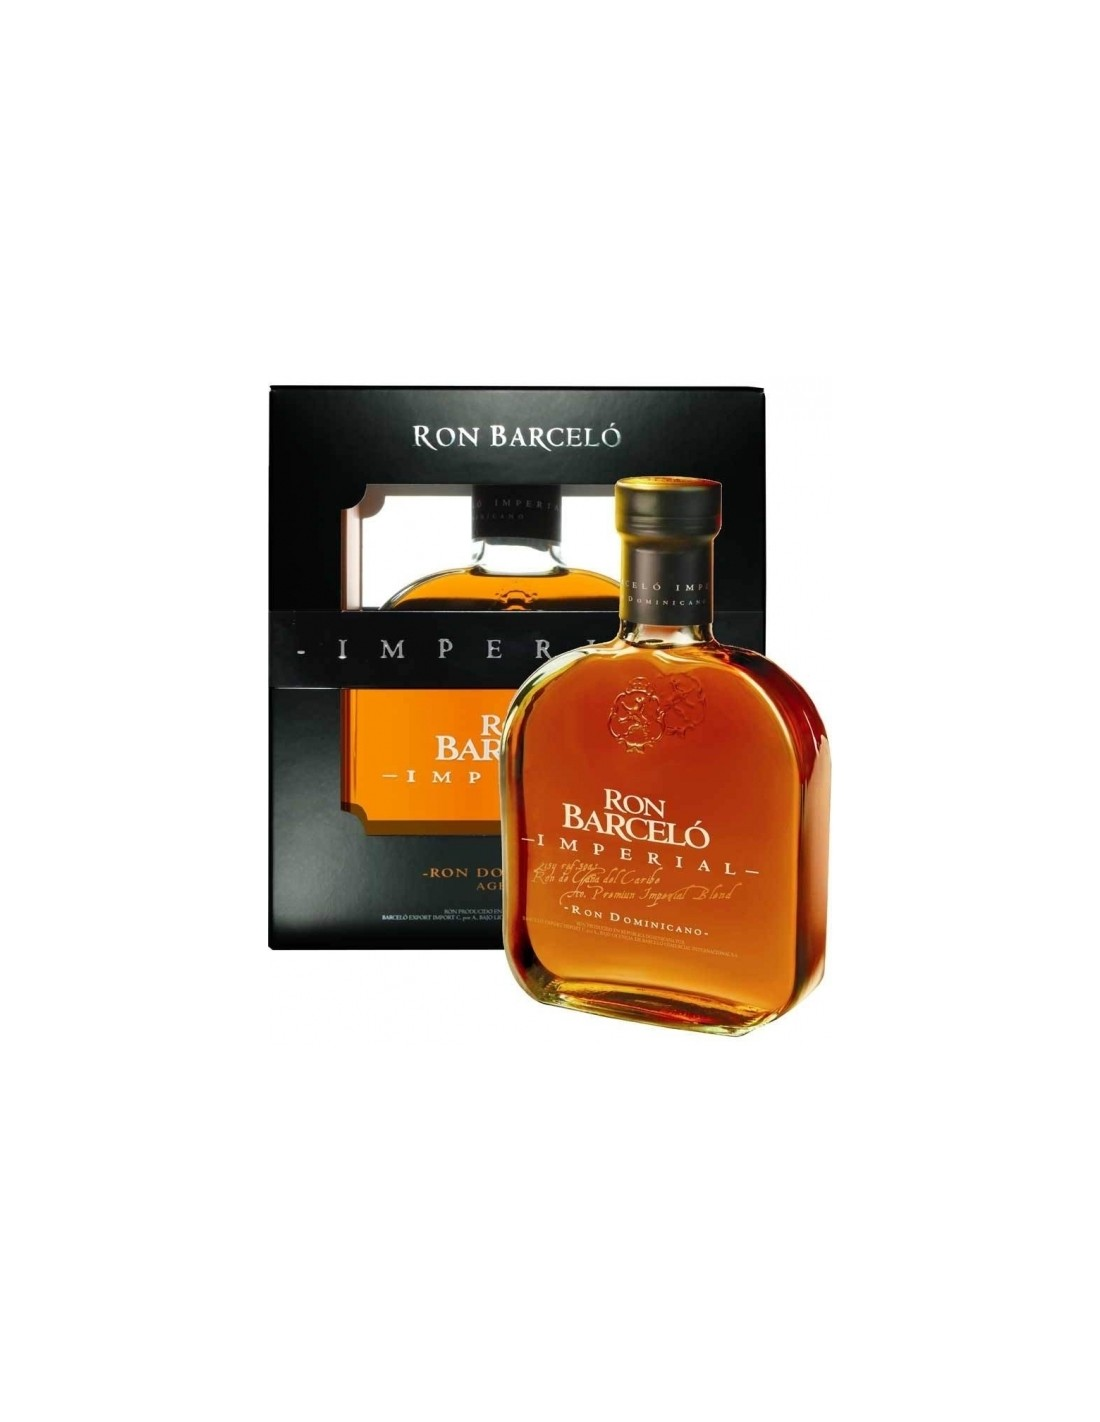 Rom Barcelo Imperial, 38%, 0.7L